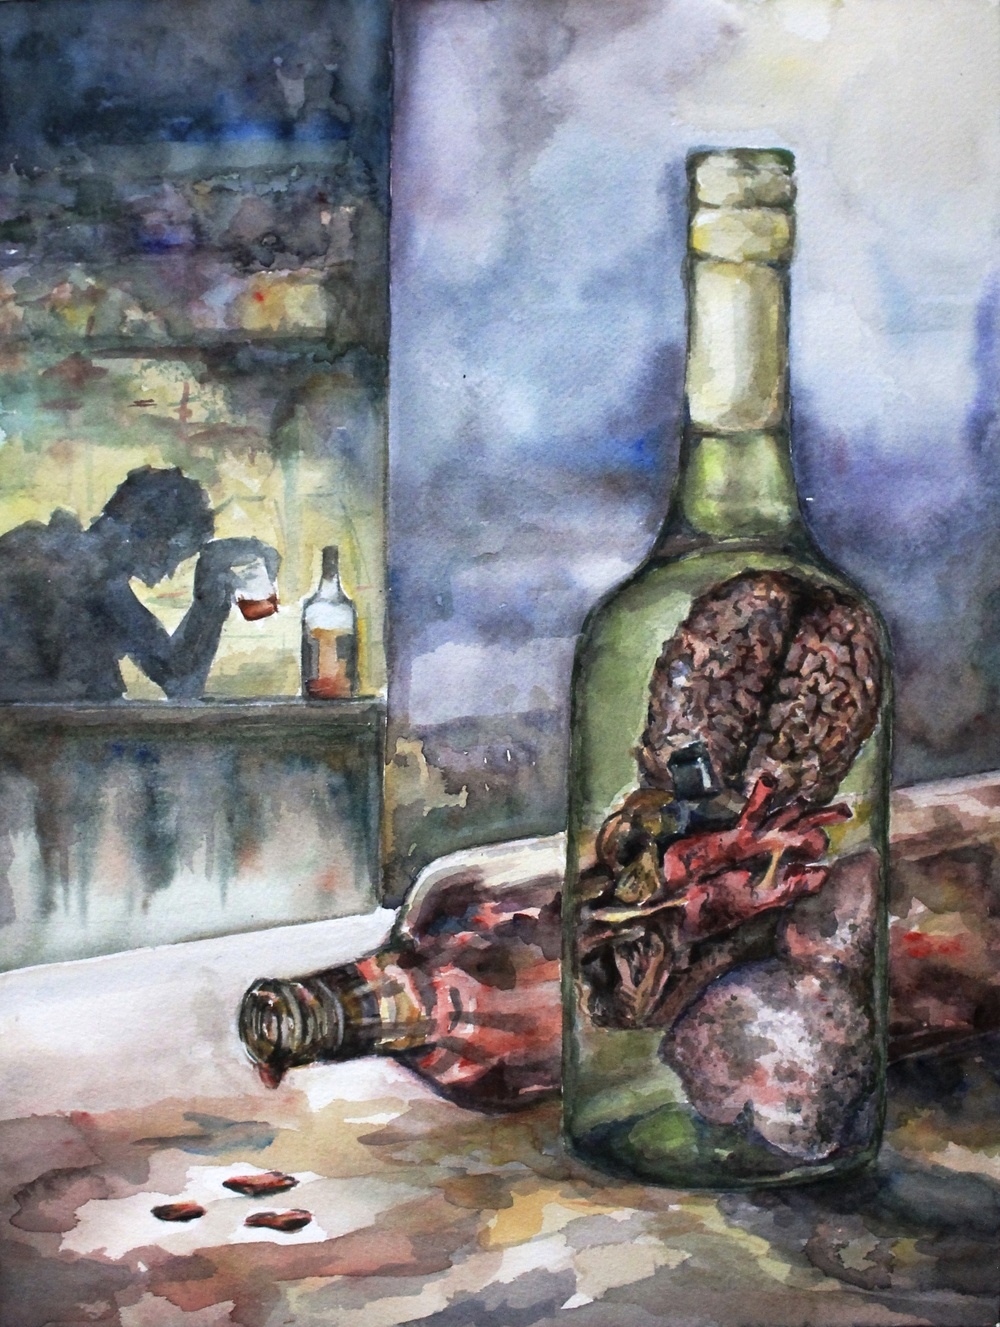 Life in a Bottle                                                                                                                                                                      12x16 watercolor                                       Honorable mention         Exhibited in Alcohol Awareness Art Competition - Italy 2014